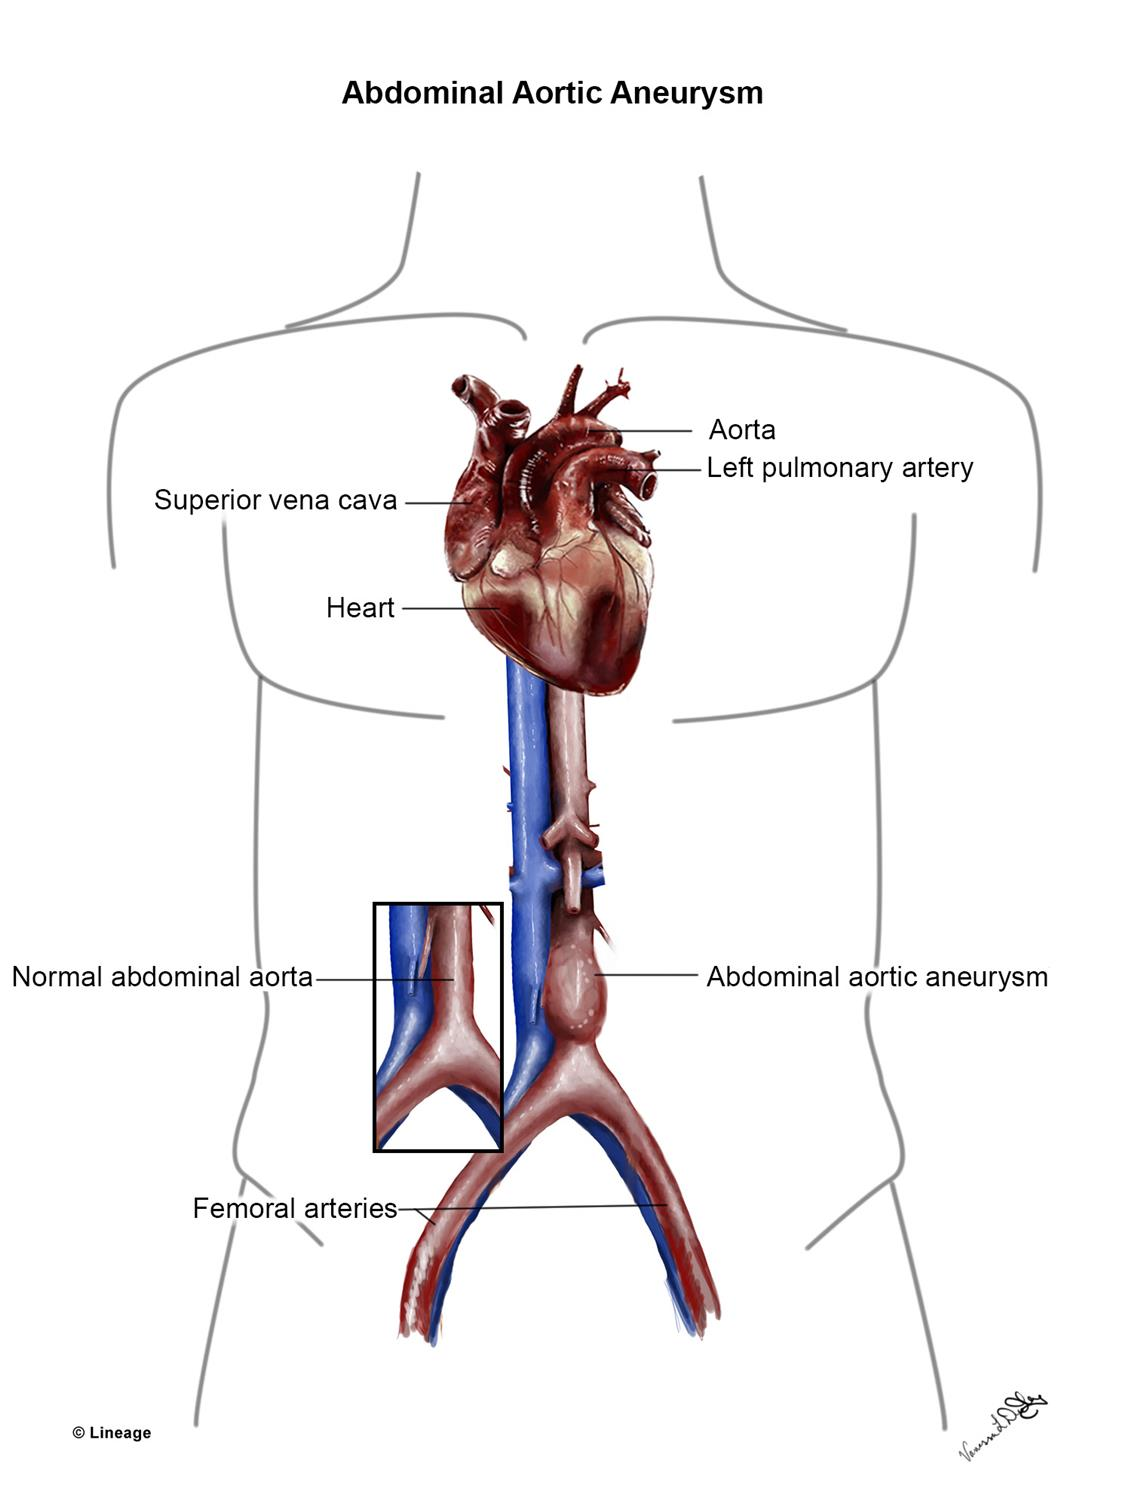 https://upload.medbullets.com/topic/120031/images/081117vldcardiacaorticaneurysm.jpg